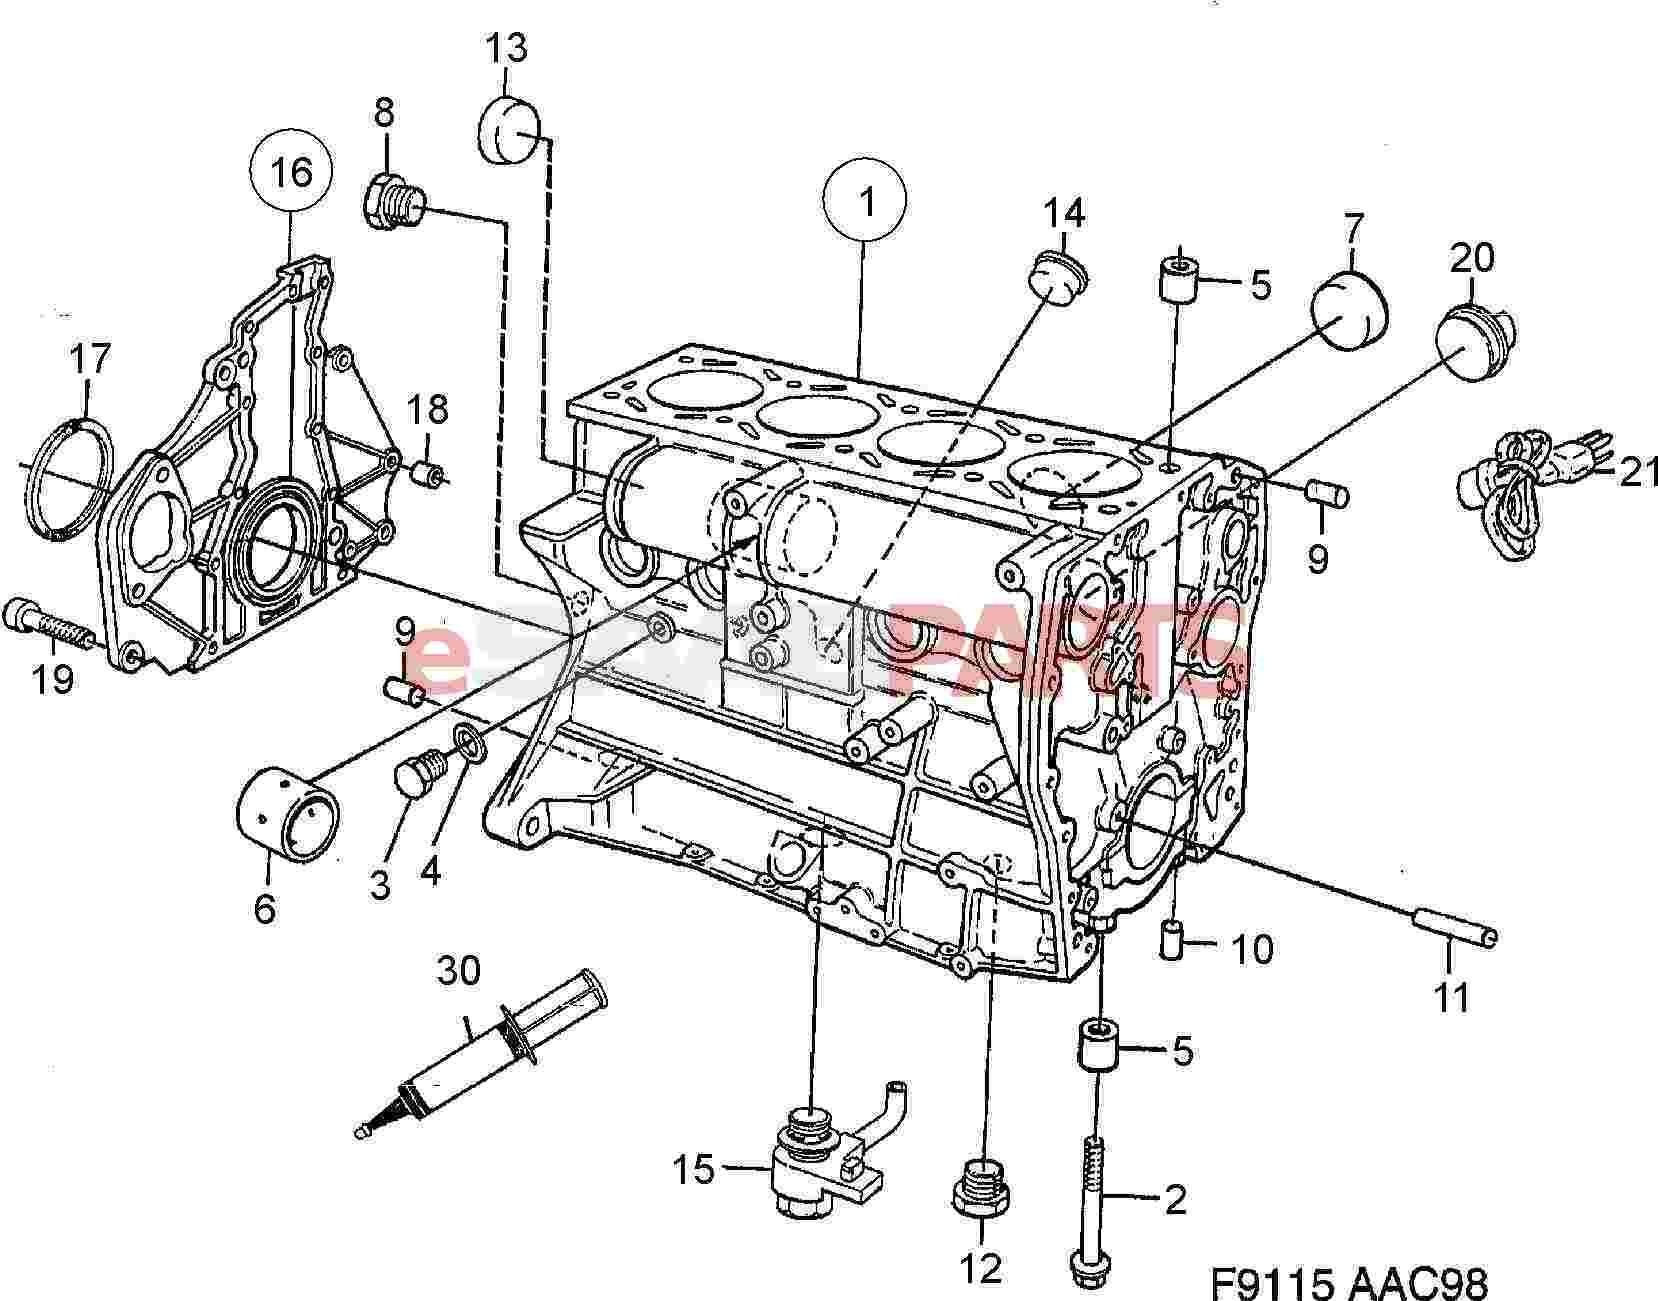 saab 9 3 cooling diagram schematic diagrams rh ogmconsulting co Wiring Diagram for Saab 9 3 Ignition 2003 Saab 9-3 Fuse Diagram